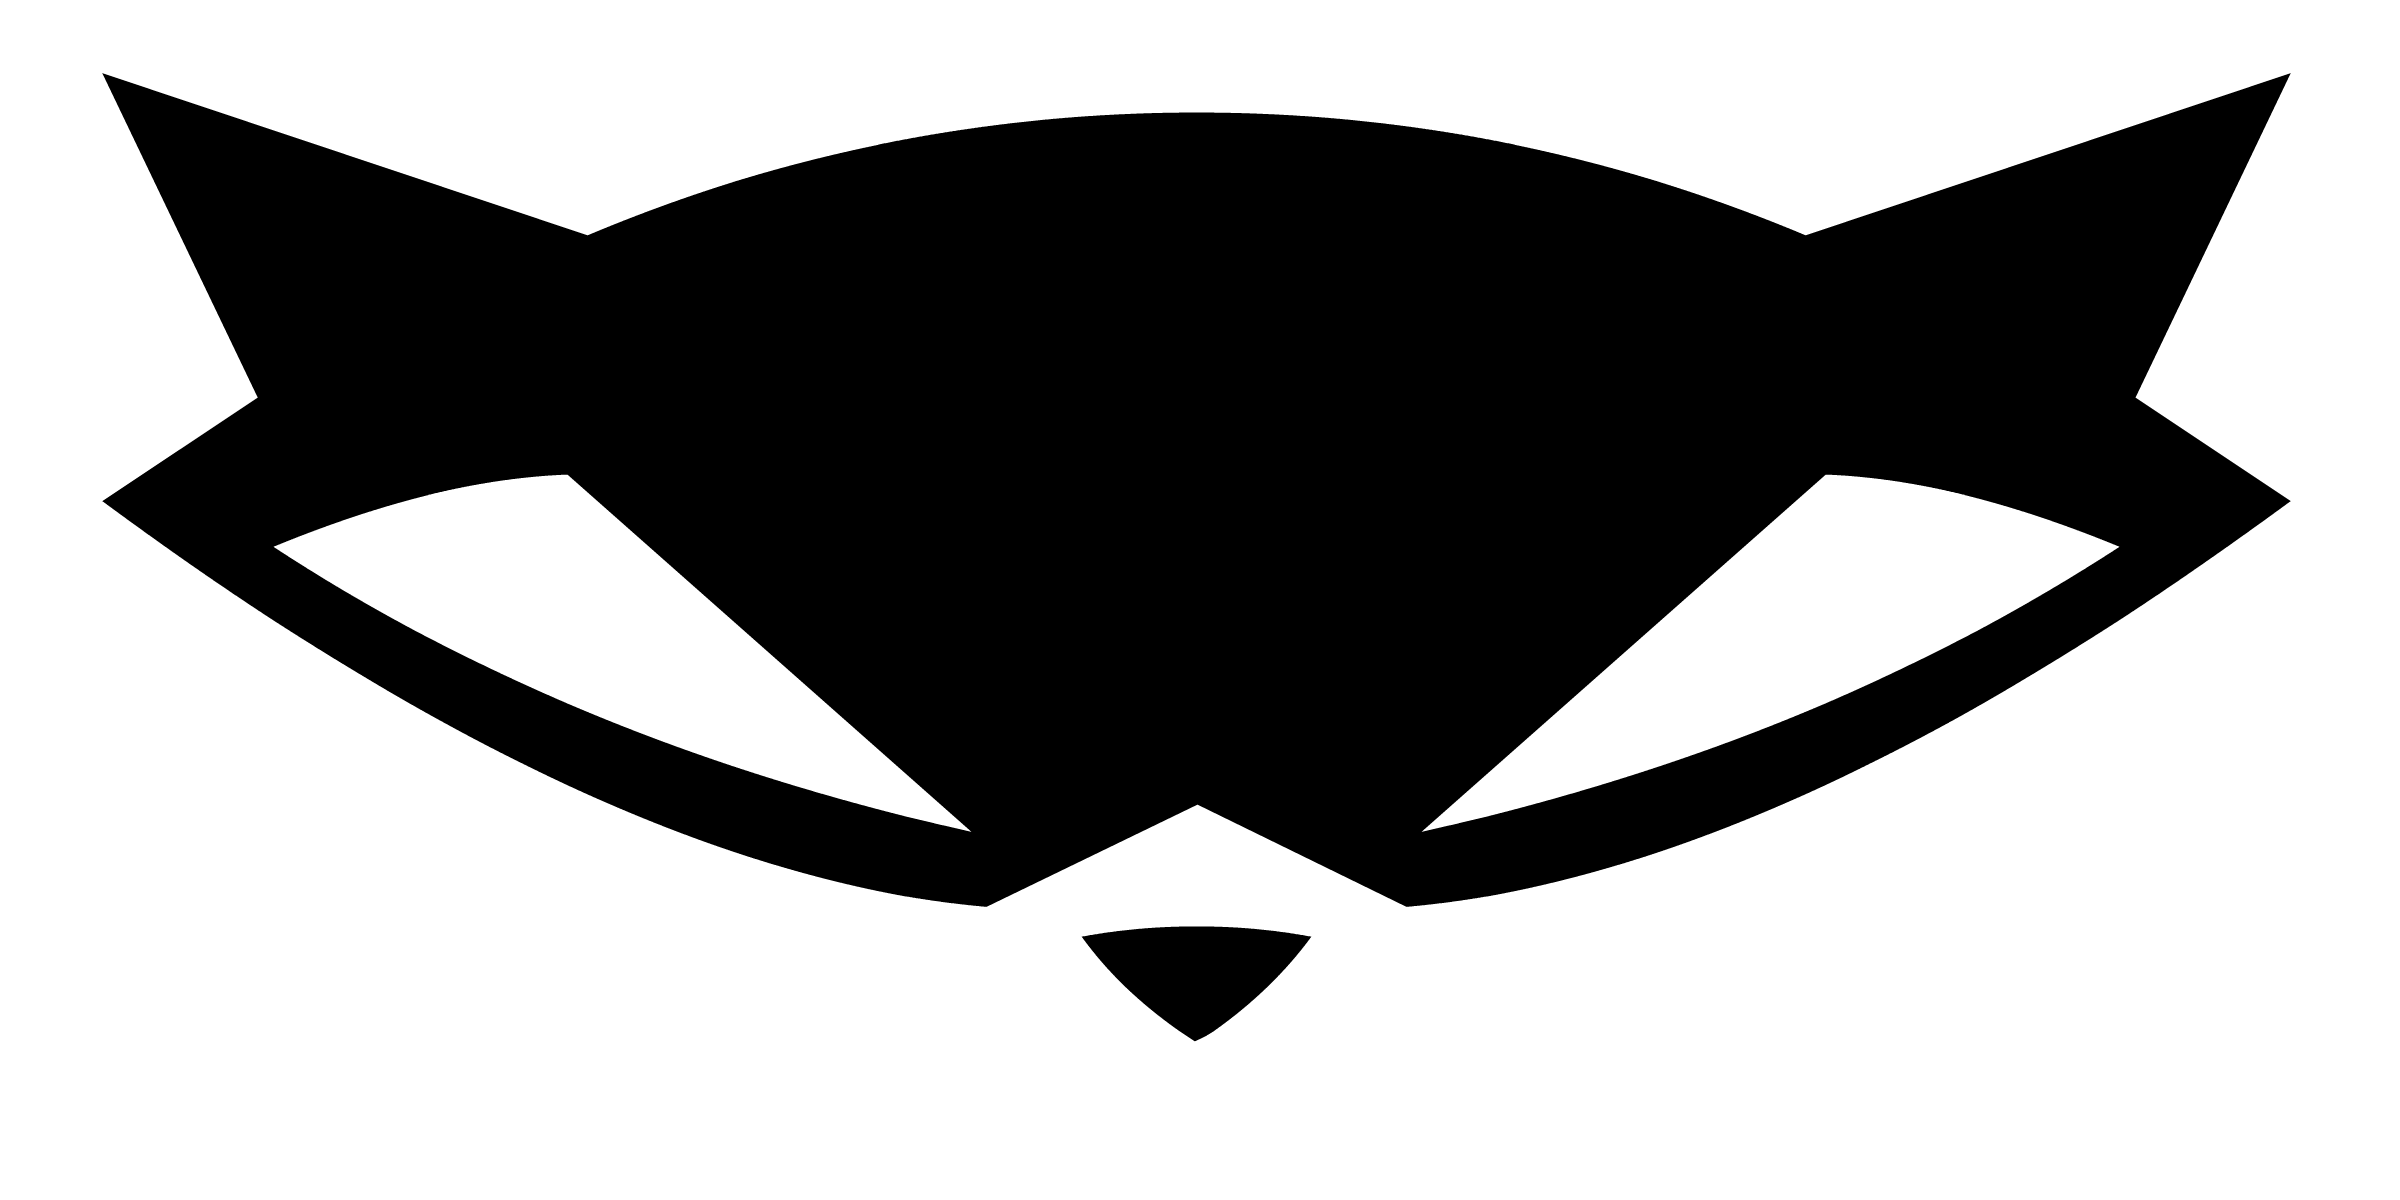 Raccoon logo png. File sly wikimedia commons